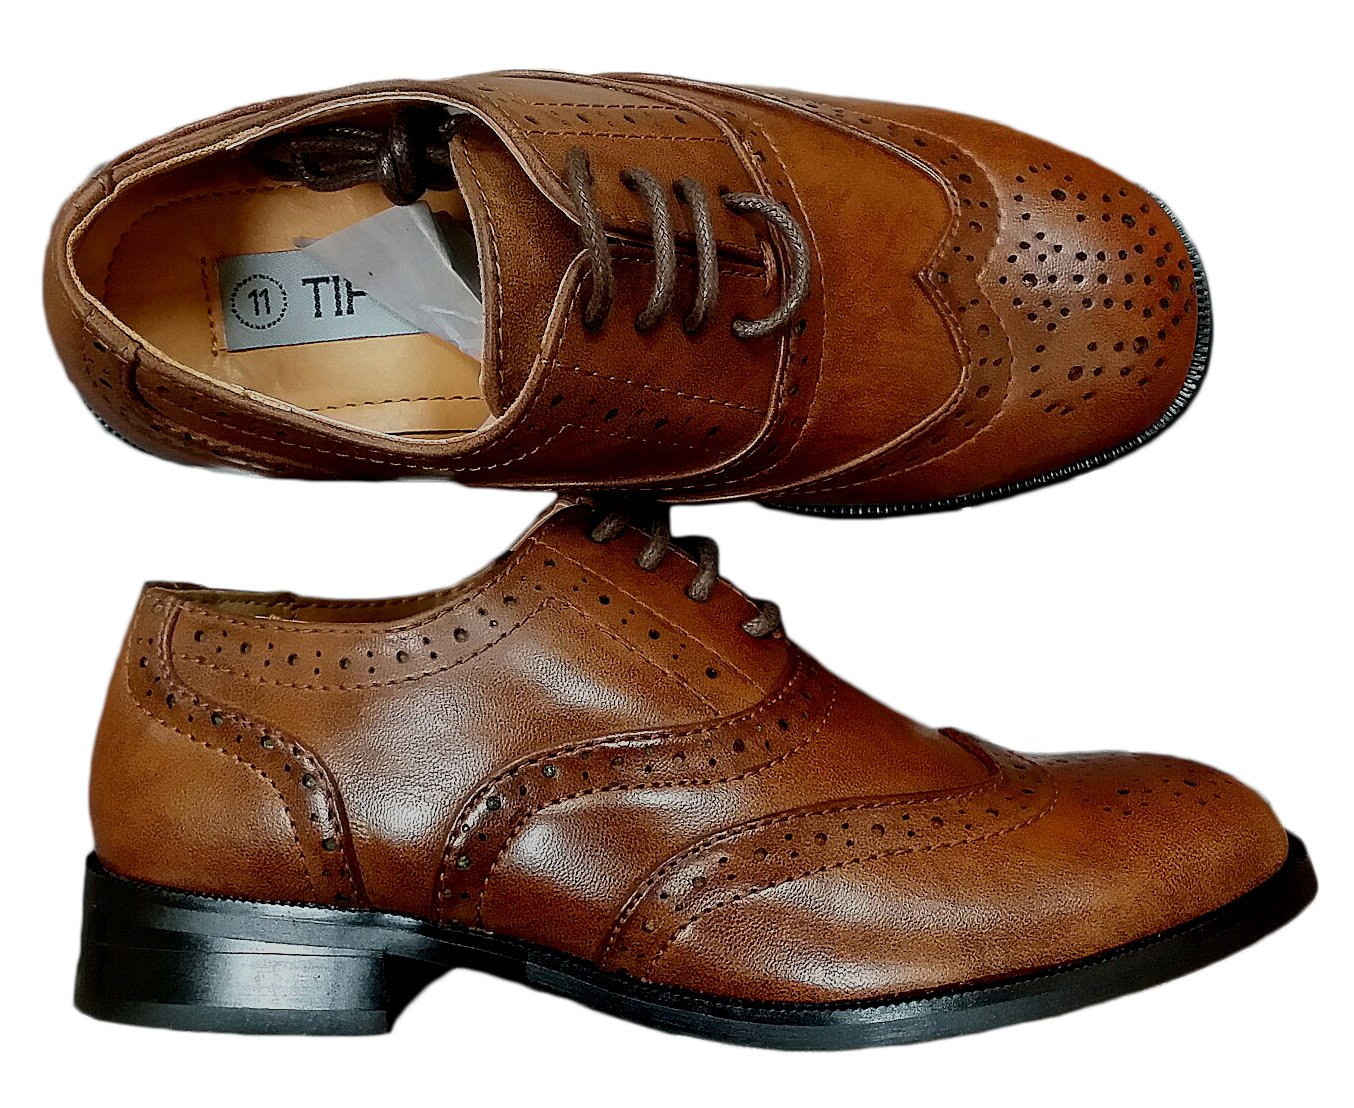 Avery Hill Boys Lace-Up Formal Oxford Style Dress Shoes - BRWN Toddler 8 Brown by Avery Hill (Image #2)